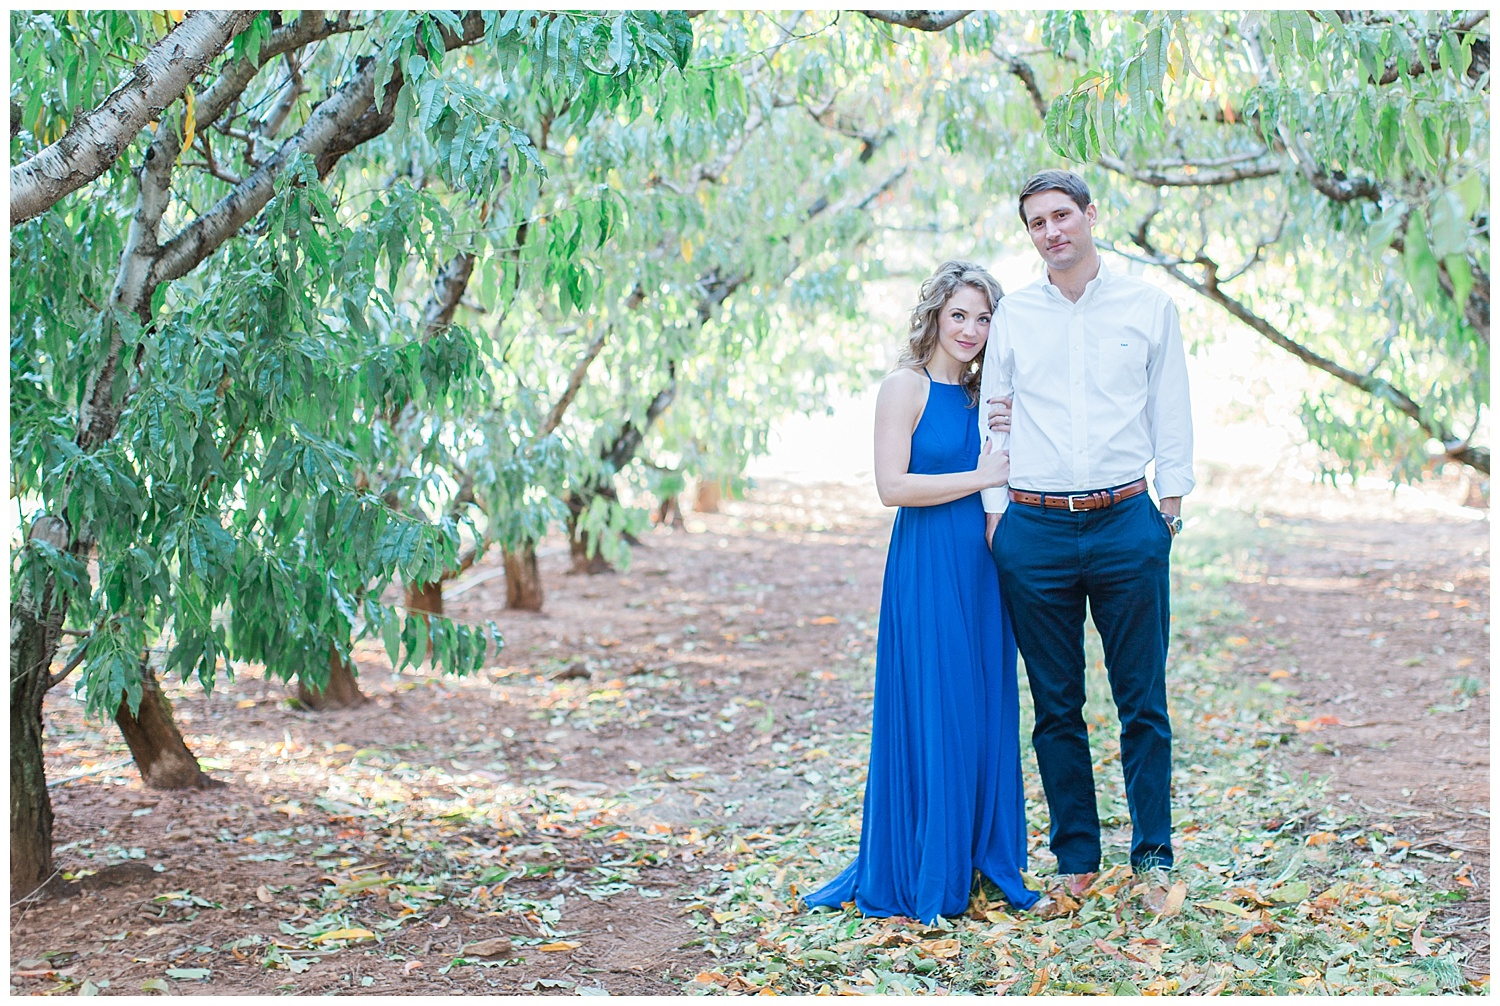 charlottesville_wedding_photographer_chiles_peach_orchard19.jpg